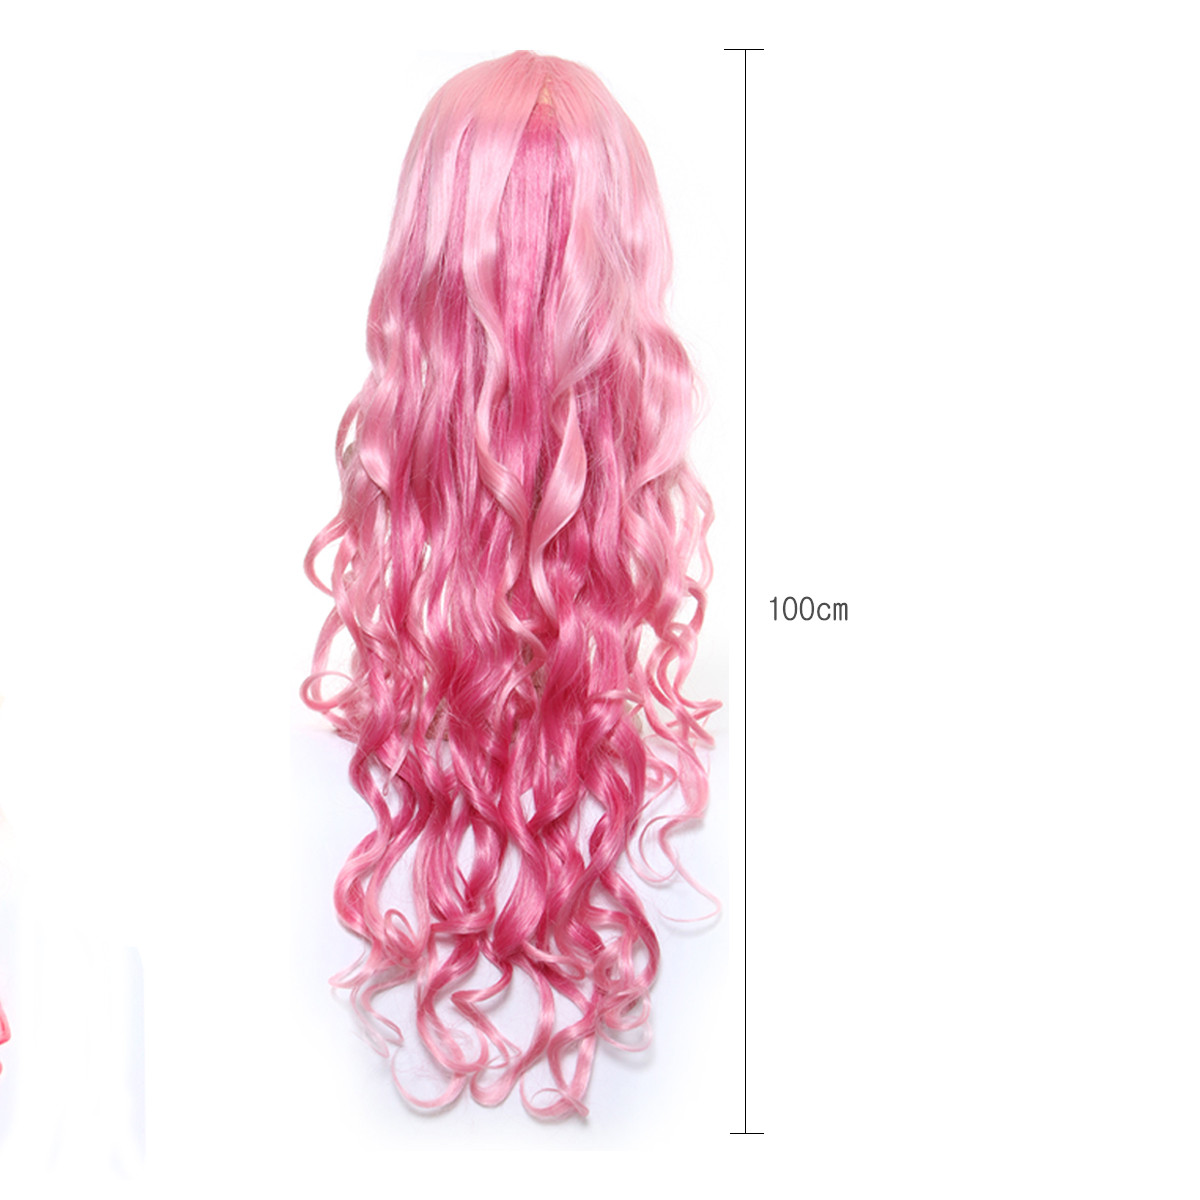 Pink Long Wavy Bangs Cosplay Wig